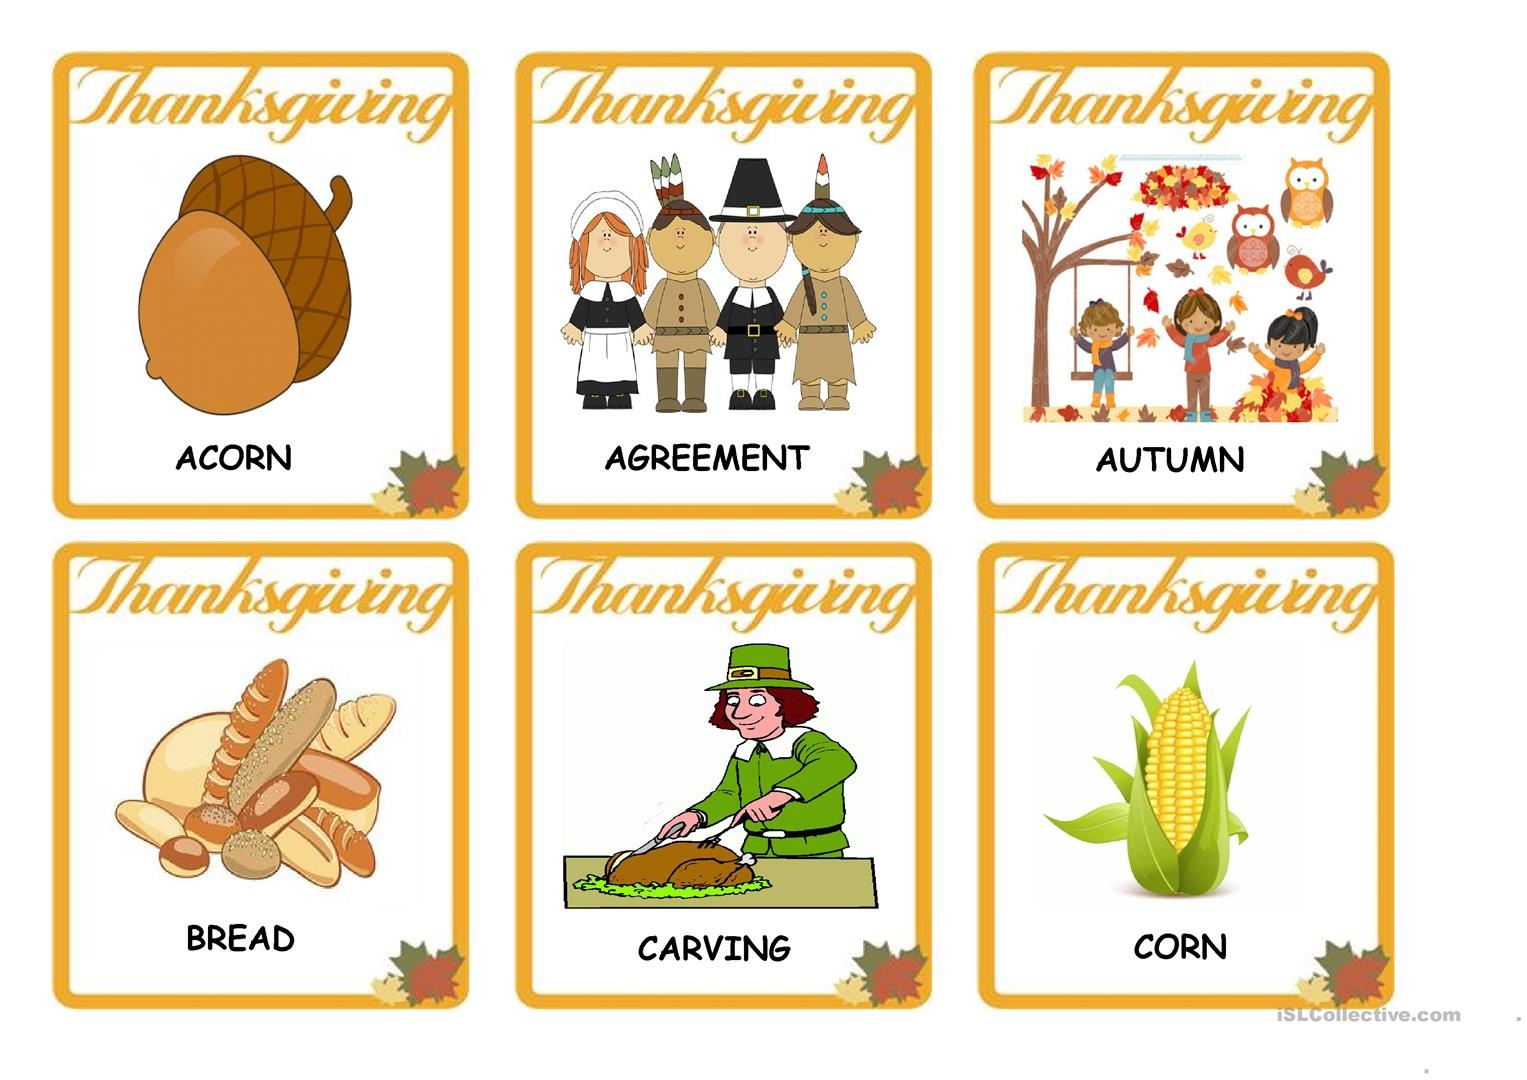 Thanksgiving - Vocabulary Flash Cards Worksheet - Free Esl Printable - Free Printable Vocabulary Flashcards